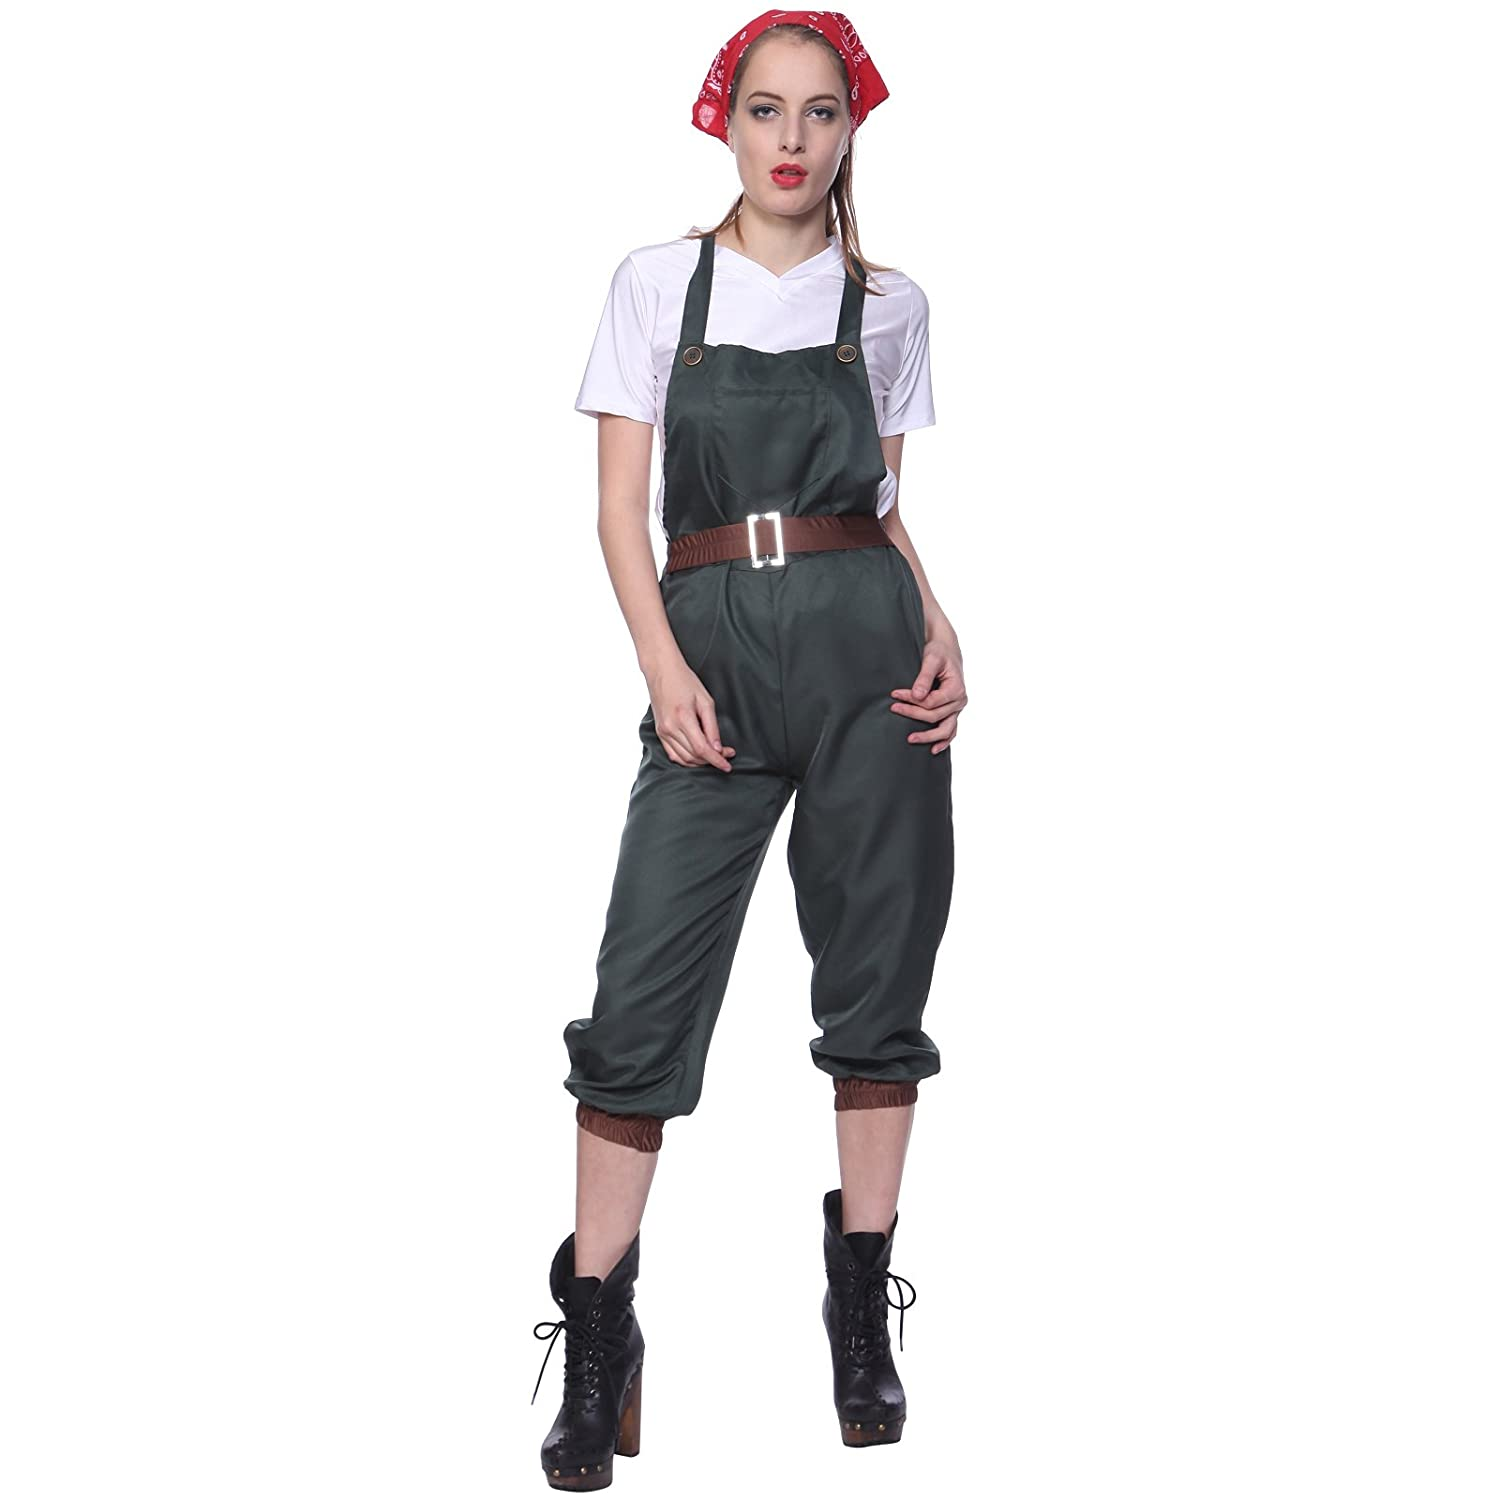 Vintage Overalls 1910s -1950s History & Shop Overalls WW2 1940s Land Girl Costume World War 2 Wartime Uniform Fancy Dress $14.99 AT vintagedancer.com